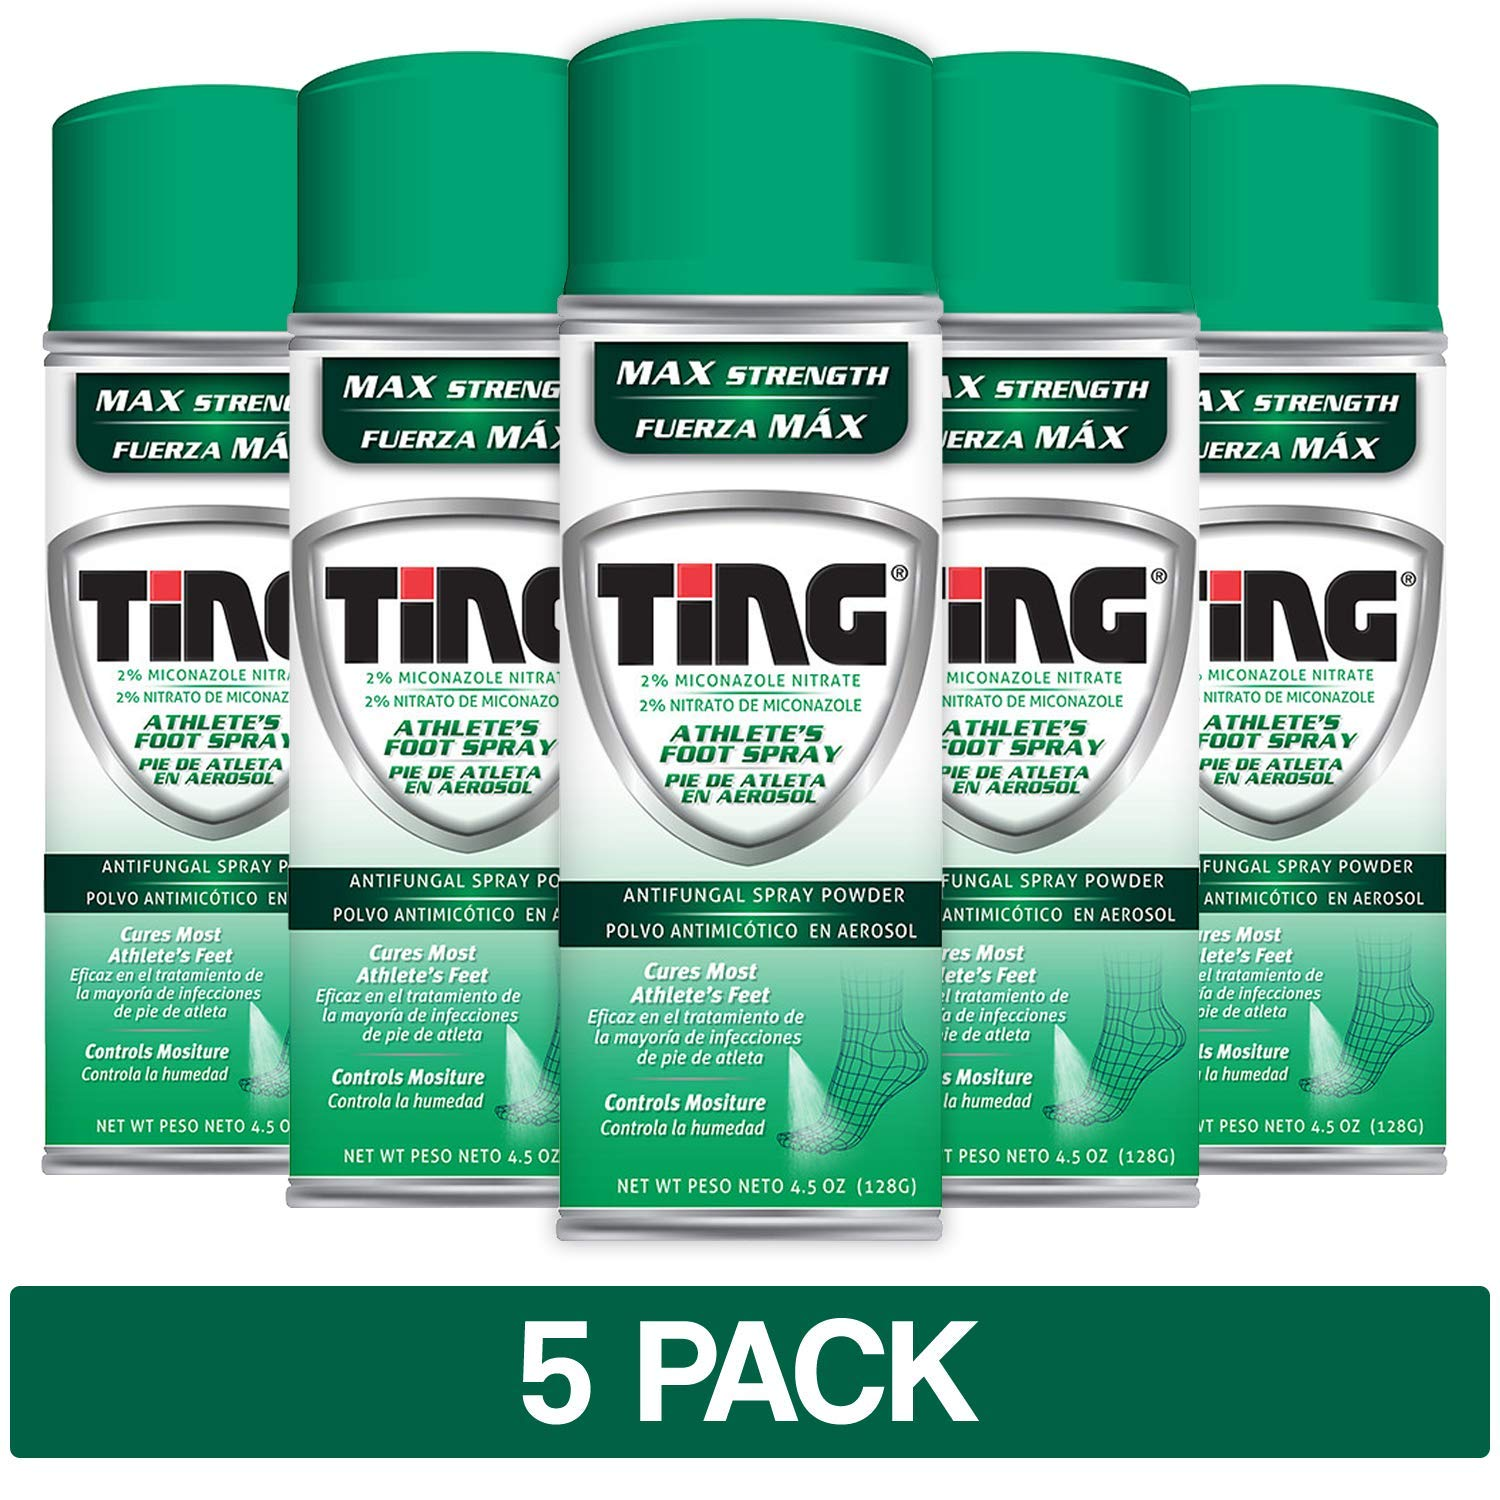 Ting Antifungal Spray Powder for Athlete's Foot, Jock Itch, Ringworm | Max Strength | 4.5-Ounces | 5-Pack by Ting